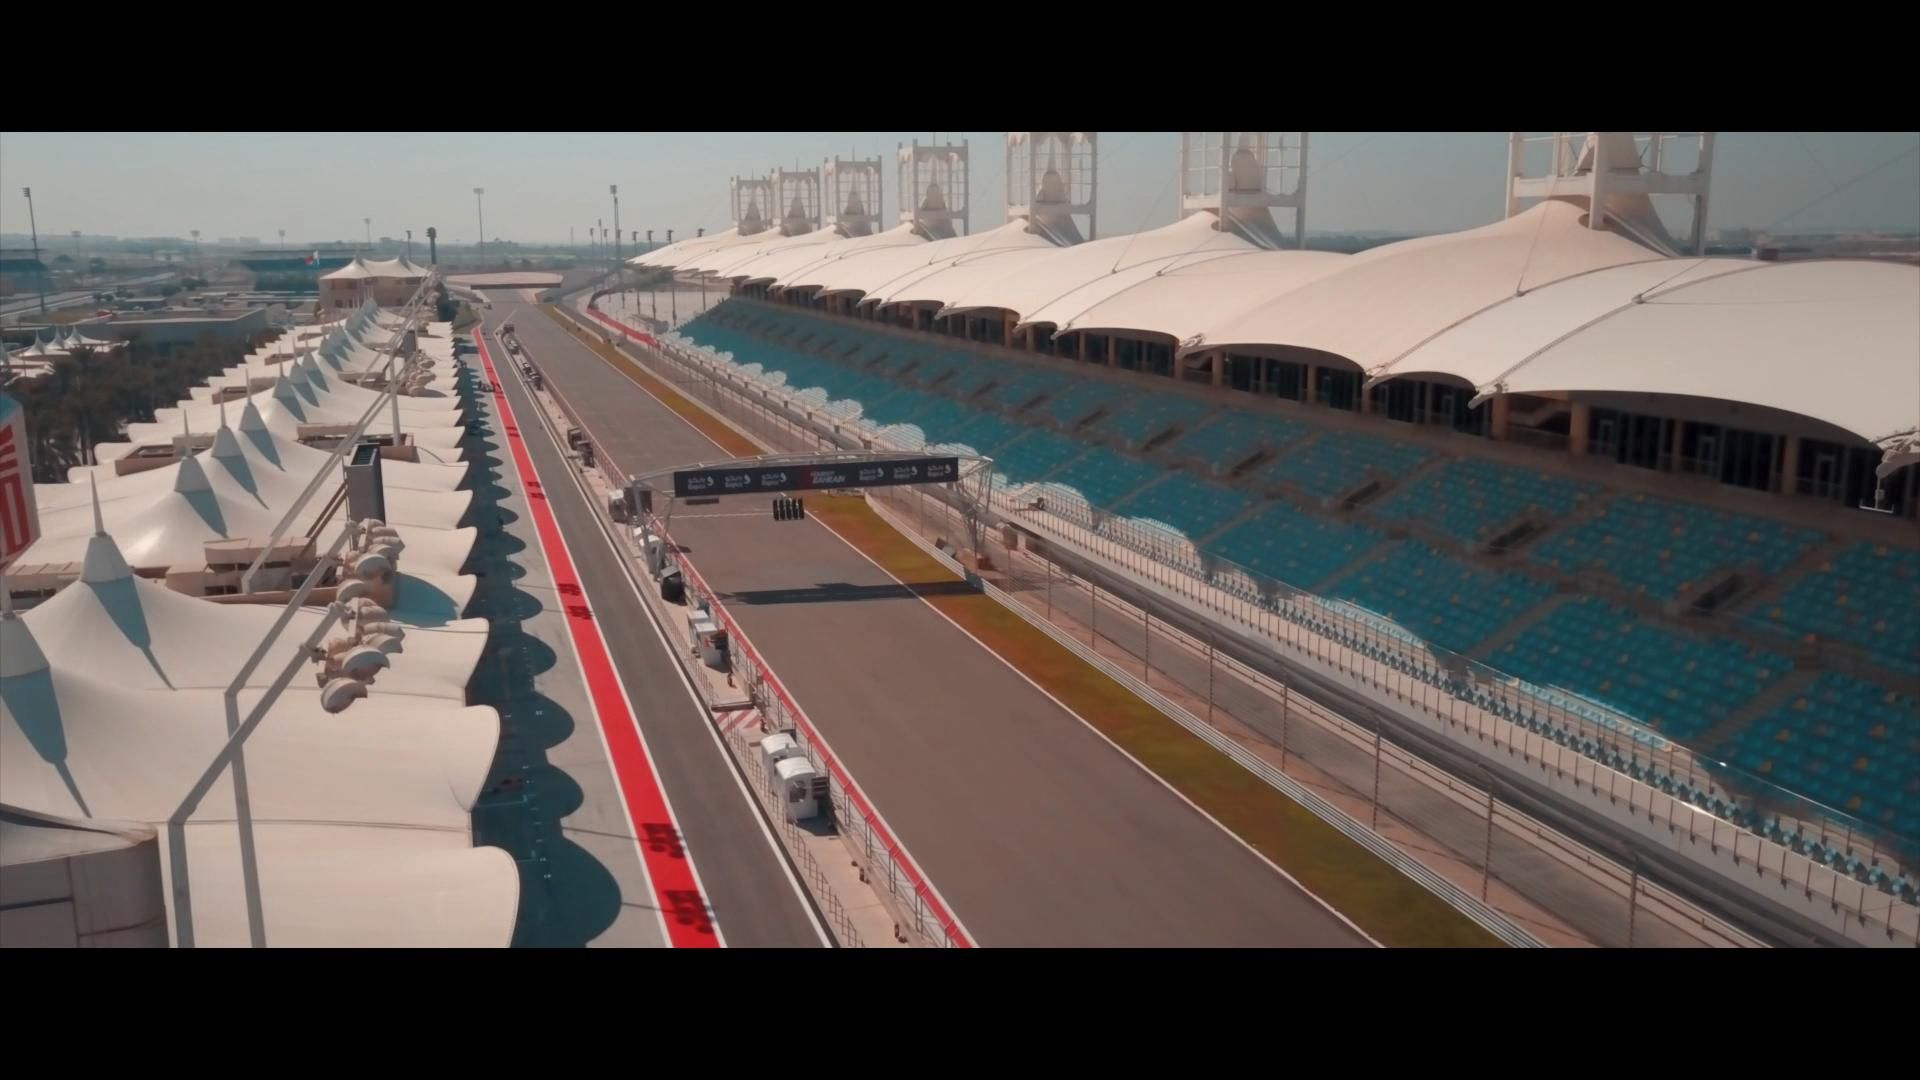 Our visit to Bahrain International Circuit was one marvelous experience. We wheeled through the circuit and raced each other till the finish. It was an absolute great encounter with adventure. We had our share of fun. You too have yours!